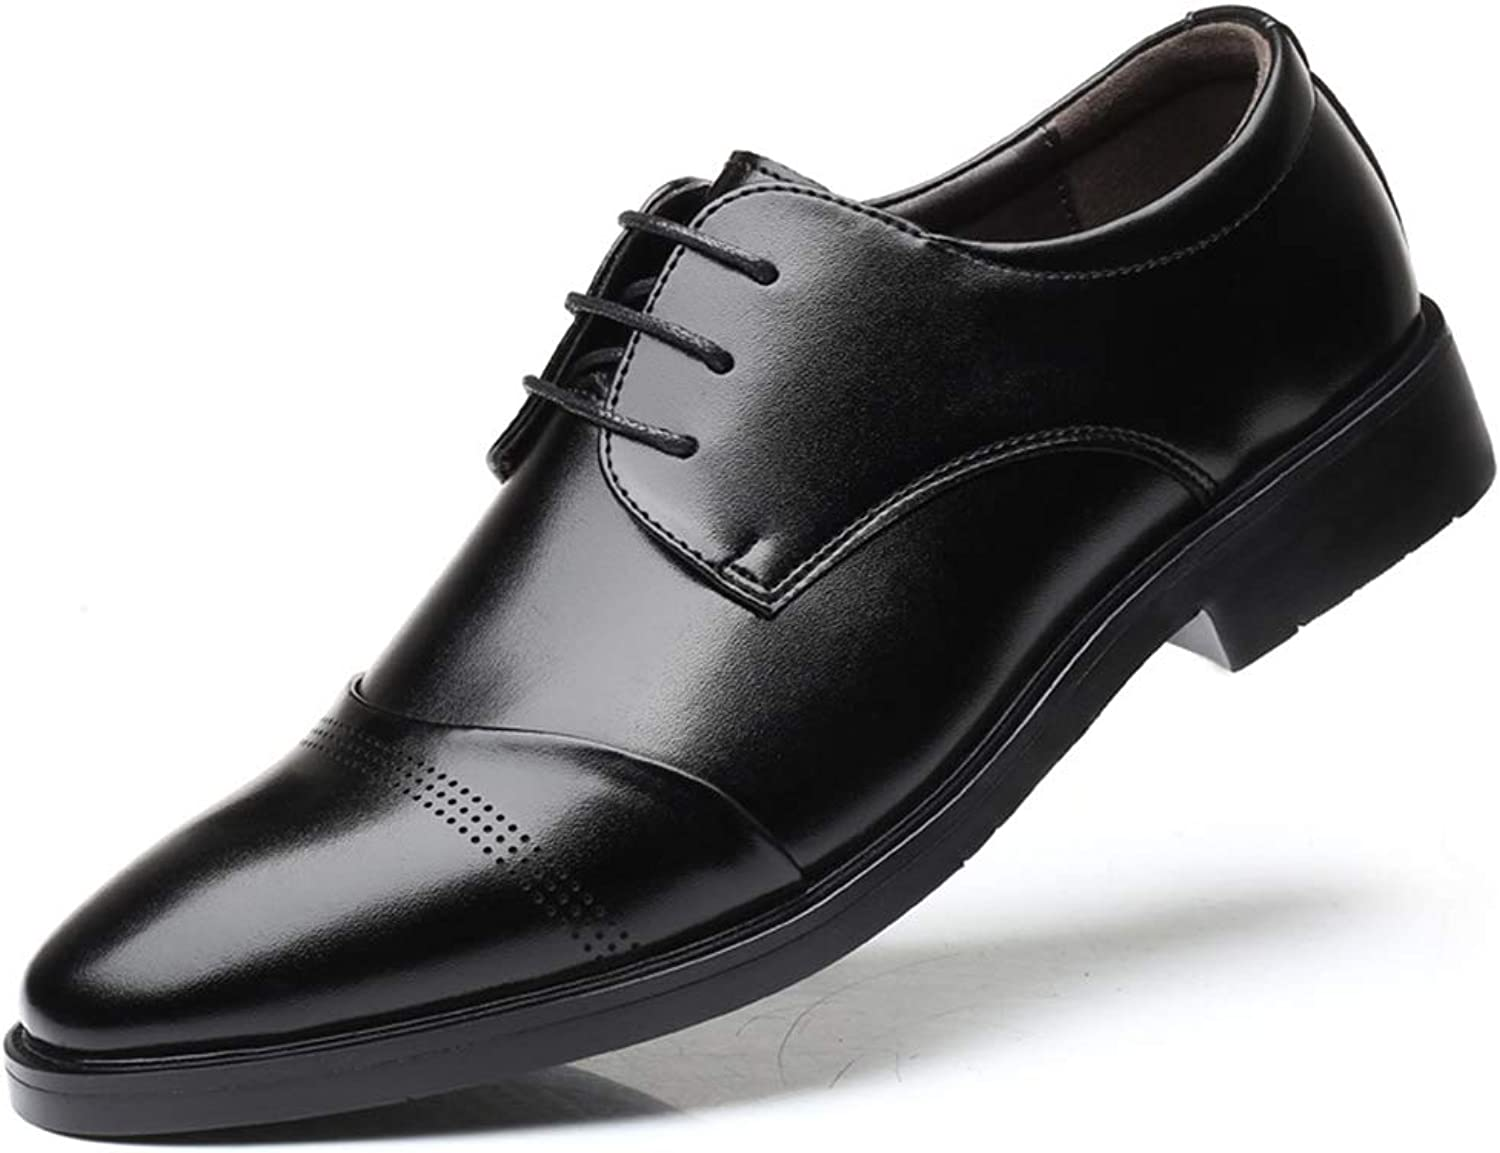 Men's Leather shoes 2018 New Business Formal shoes Dress shoes Wedding Prom Party & Evening Leather shoes,B,42